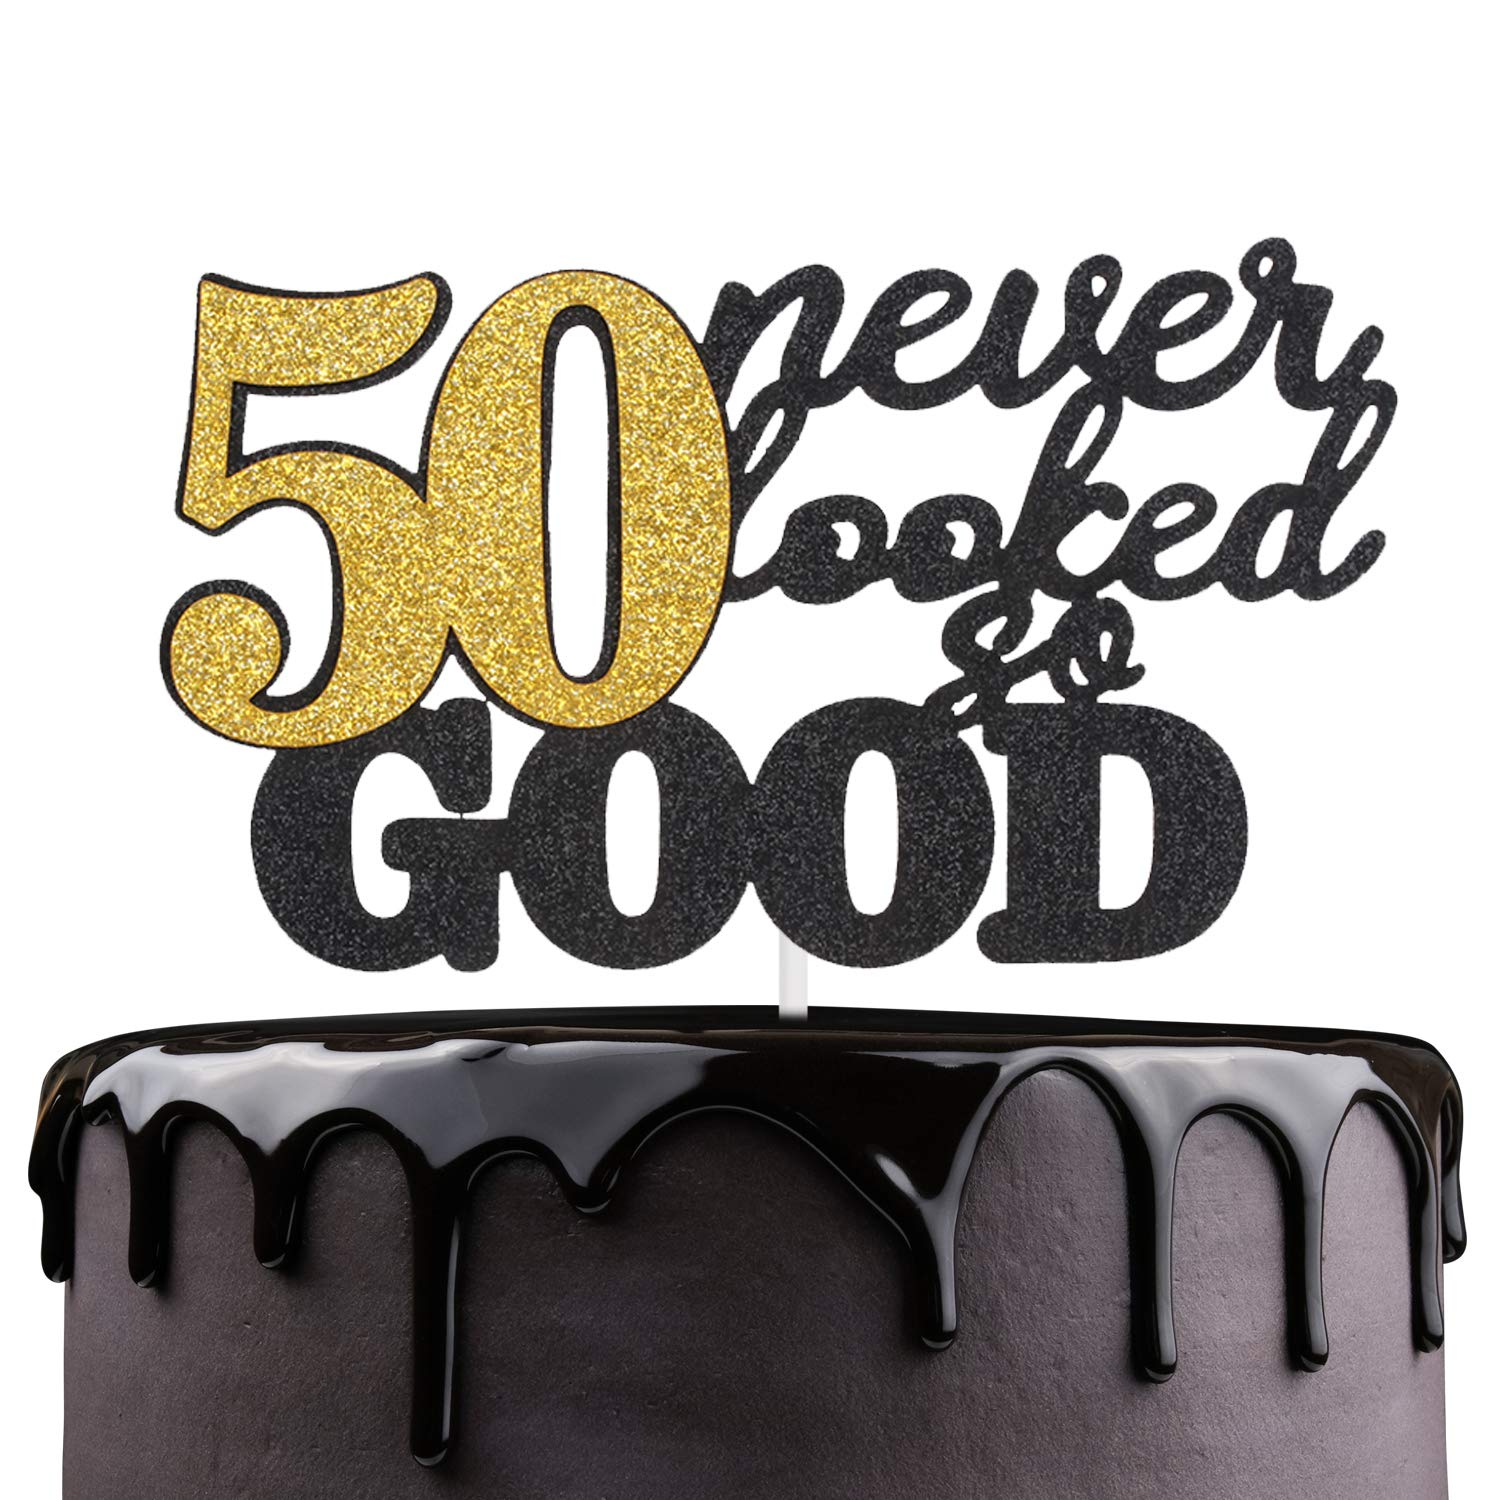 50 Never Looked So Good Happy Birthday Cake Topper Black Glitter Fabulous Fifty Years Anniversary Cake Decor Cheers To Successful Man Women 50th